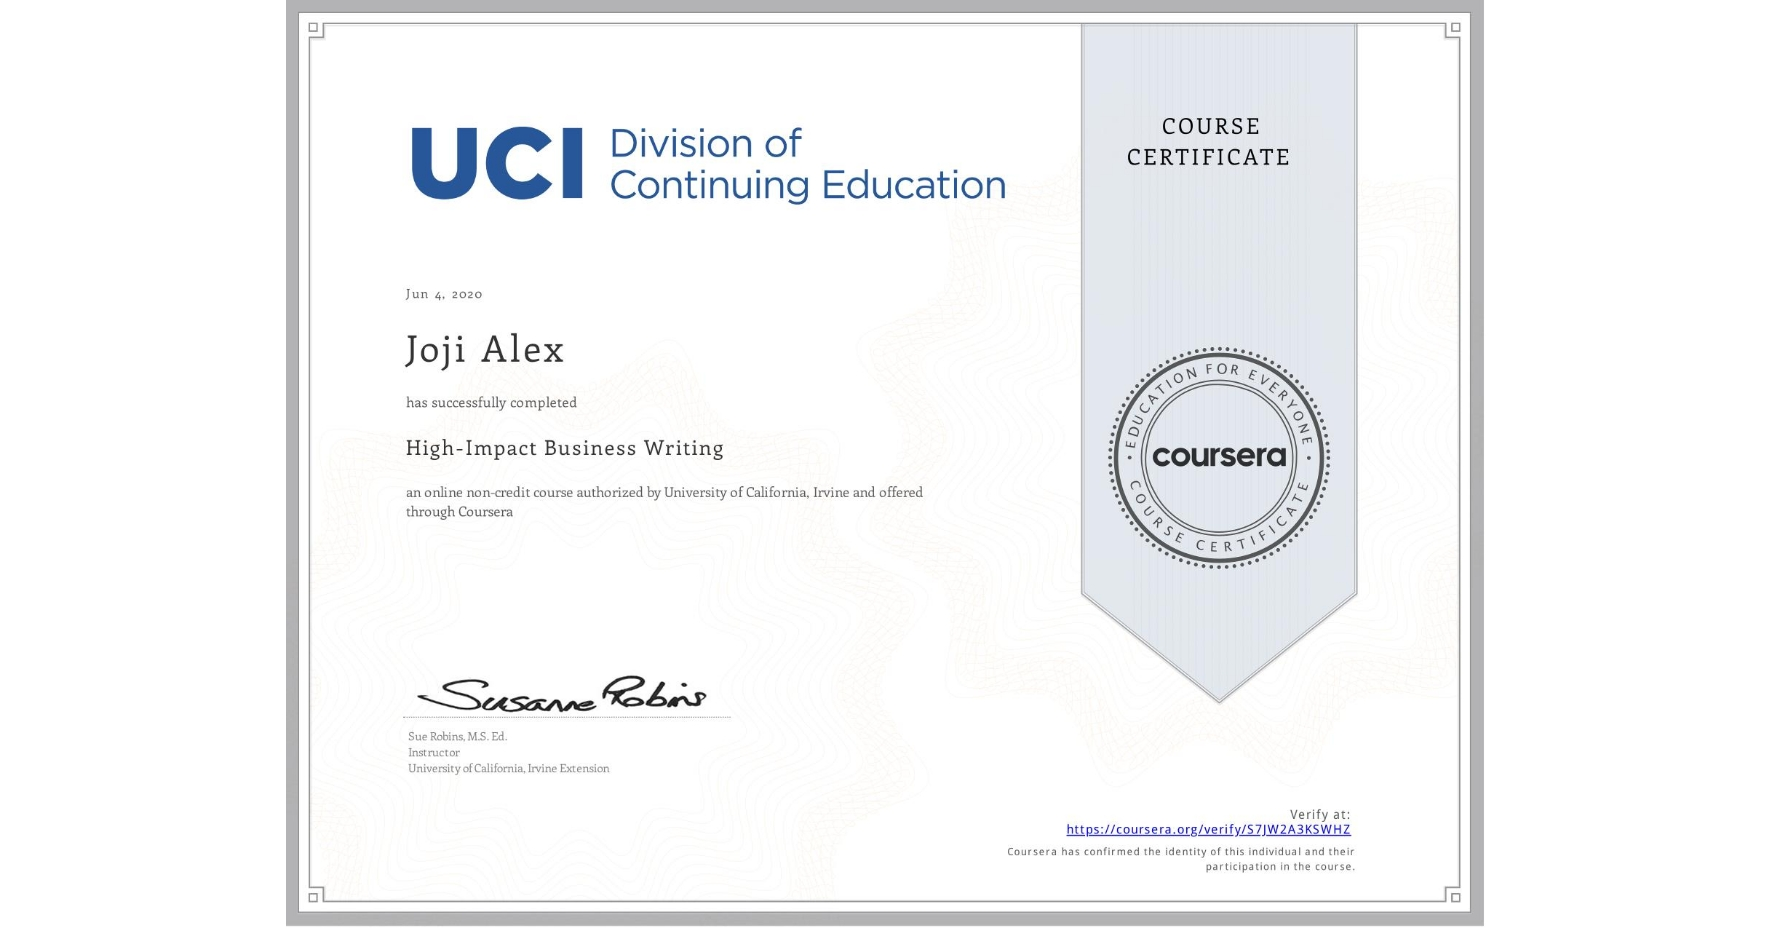 View certificate for Joji Alex, High-Impact Business Writing, an online non-credit course authorized by University of California, Irvine and offered through Coursera